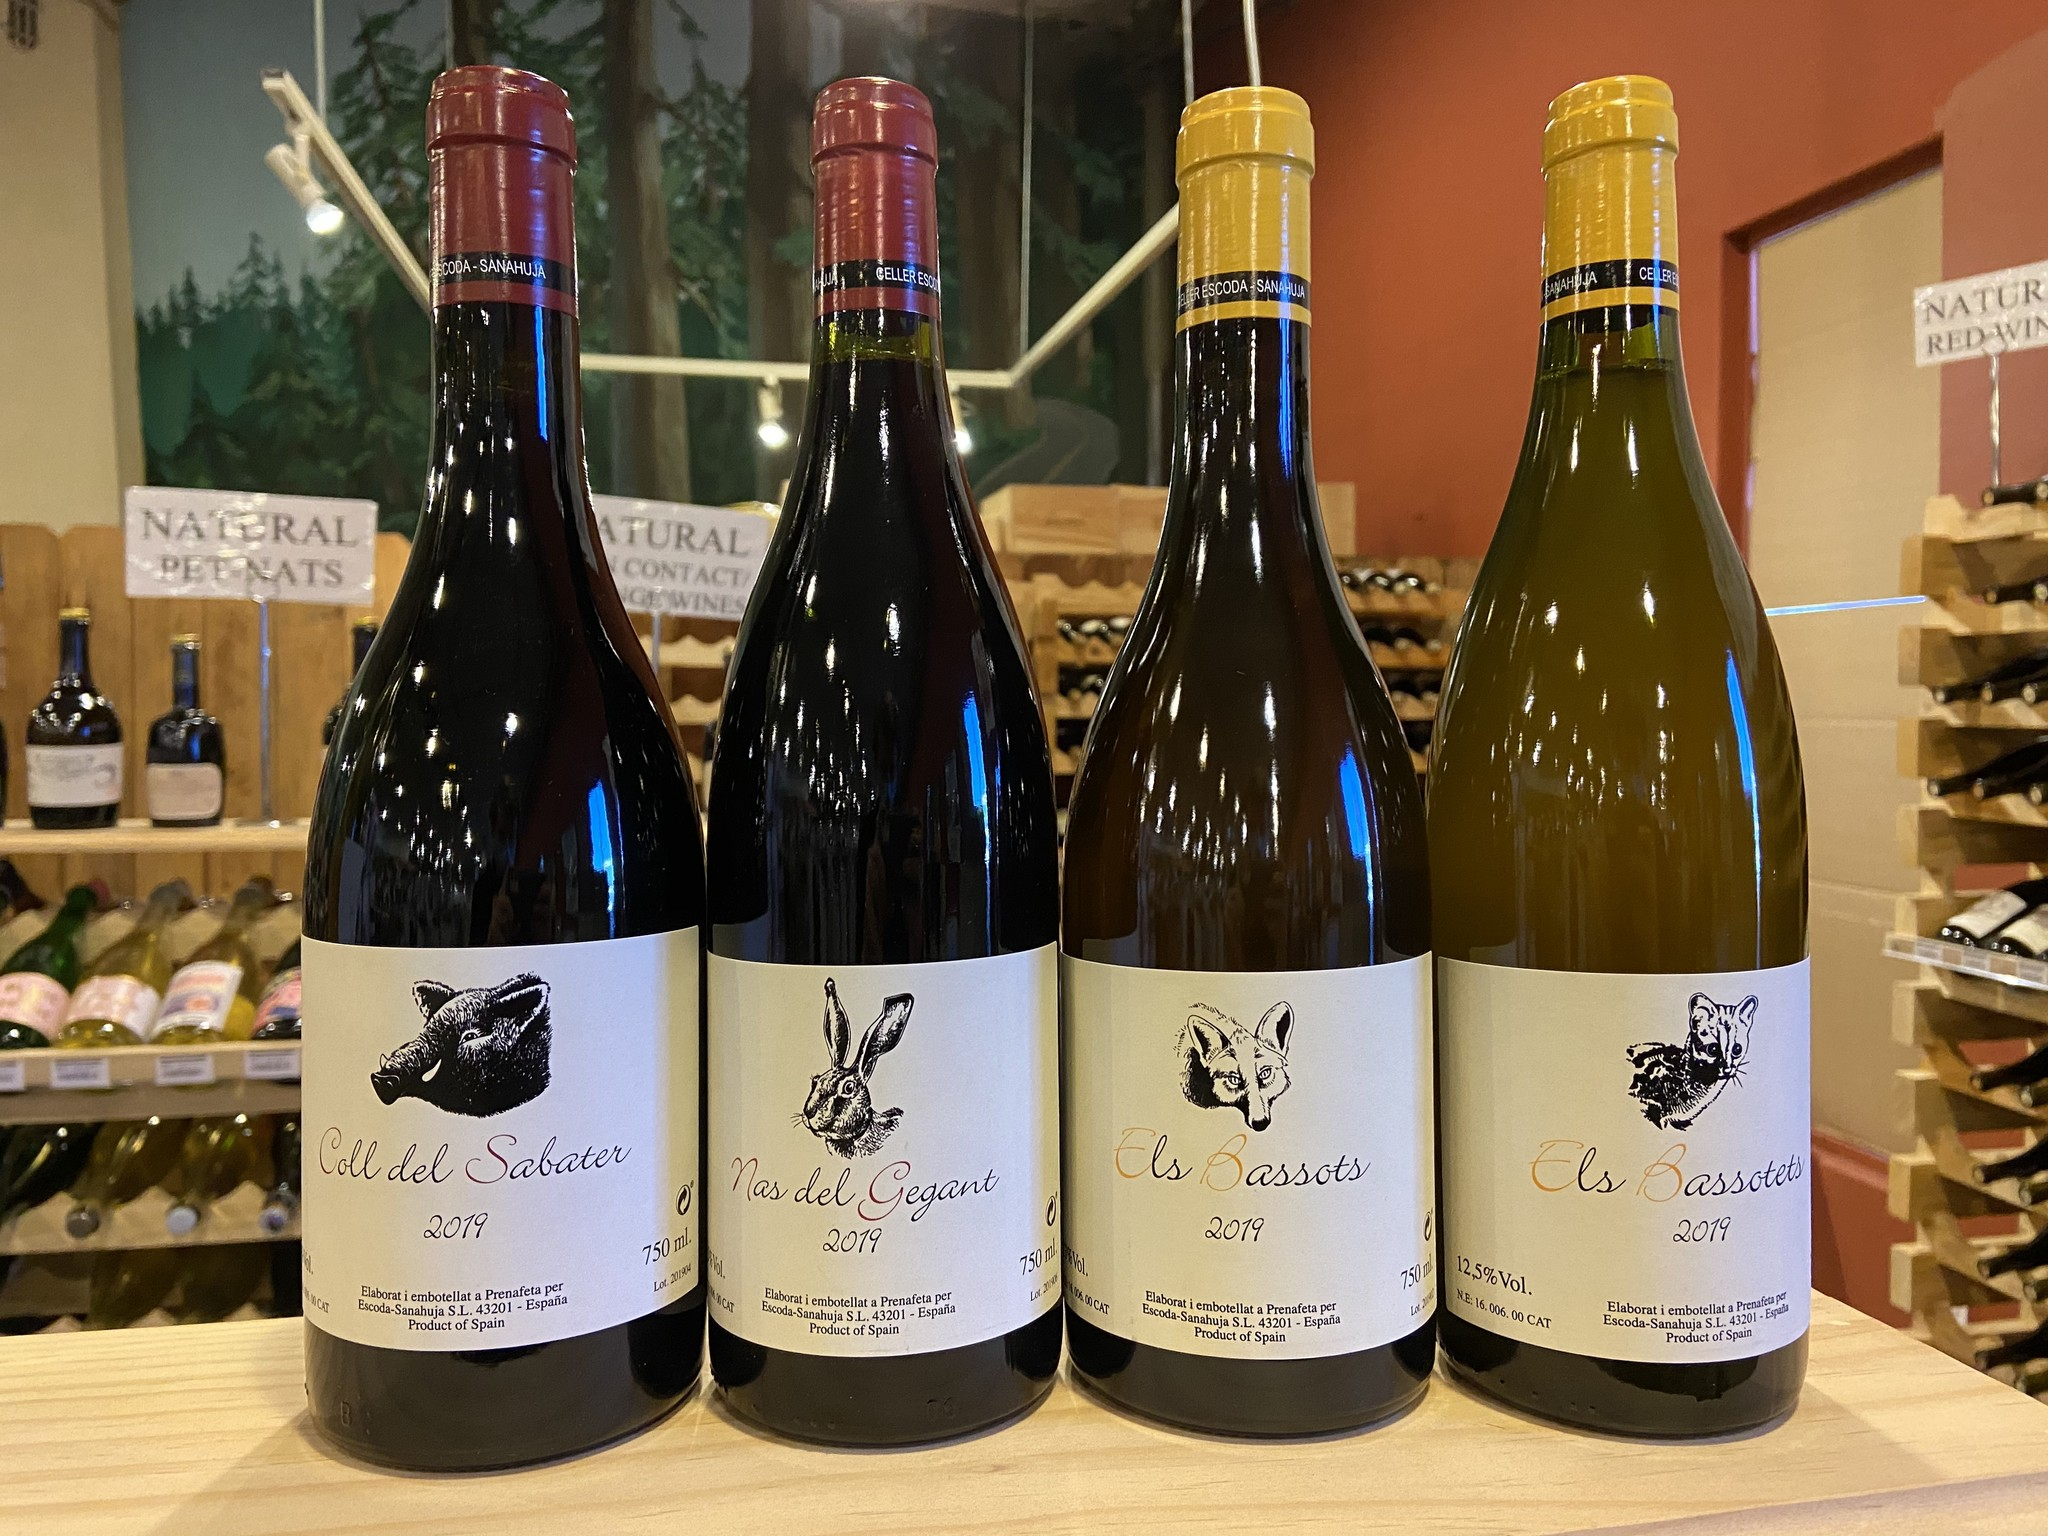 The Intriguing Nas del Gegant--How I Came to Love Natural Wines